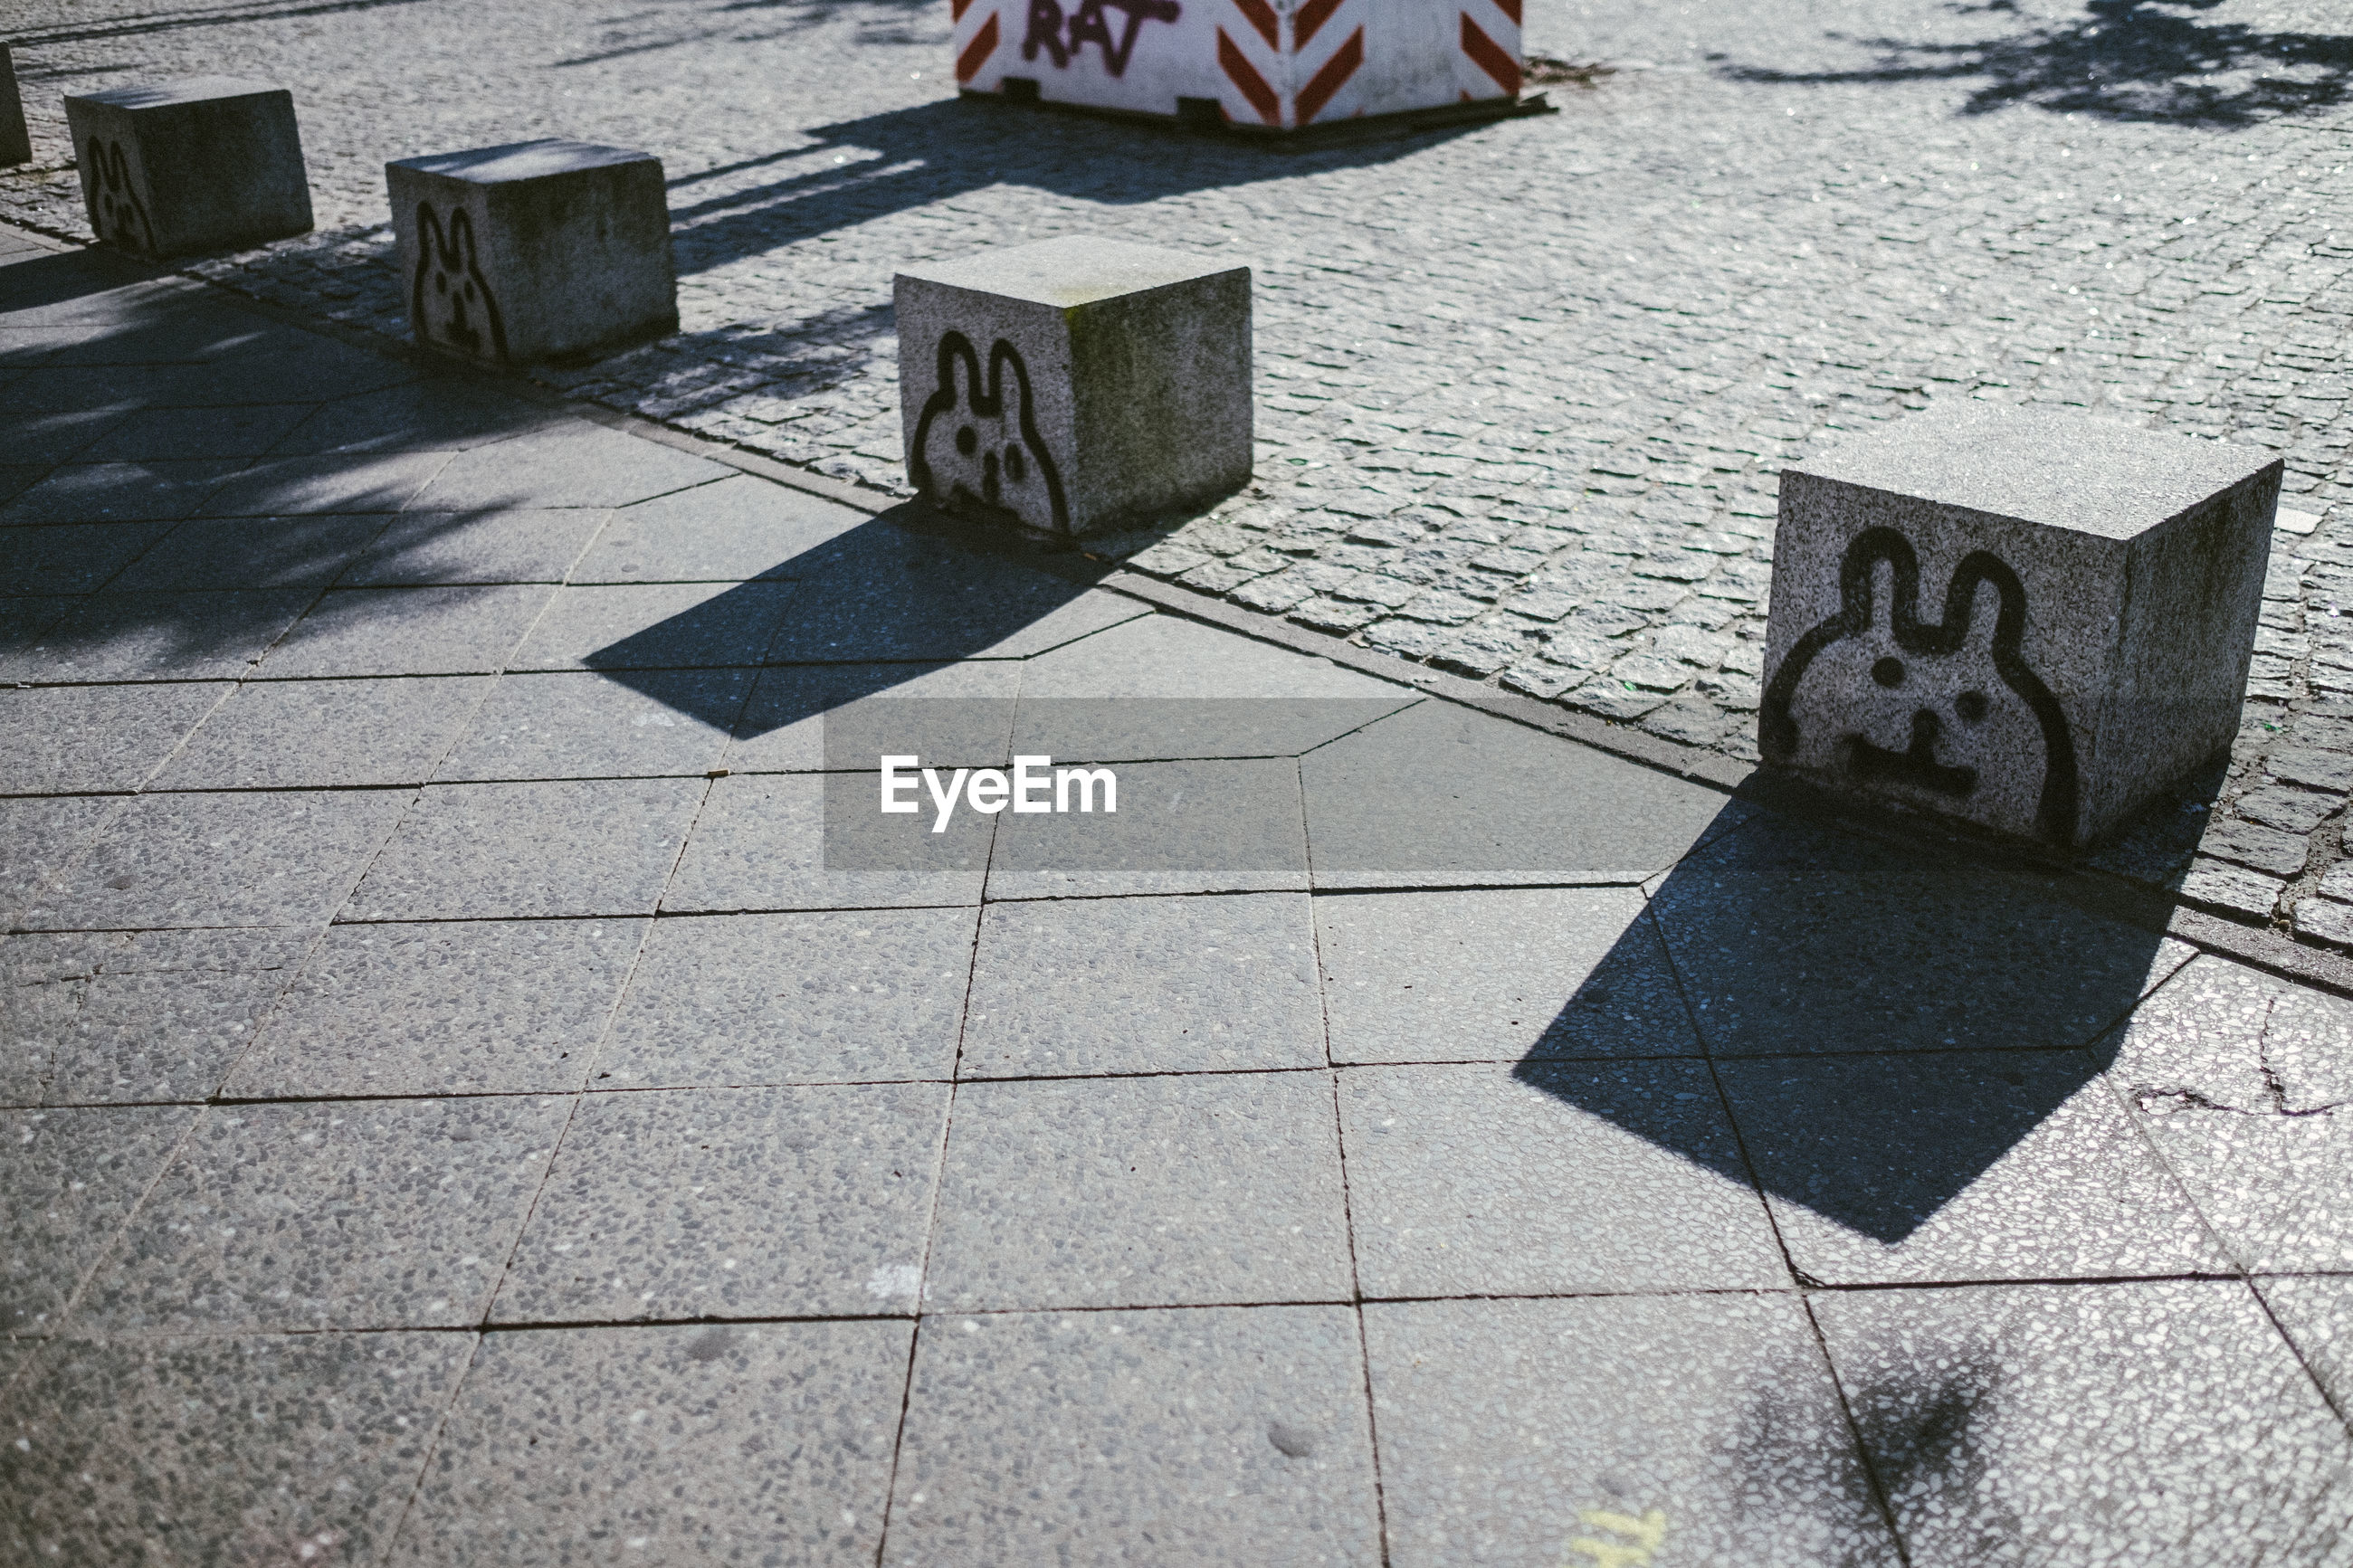 SHADOW OF TEXT ON THE GROUND